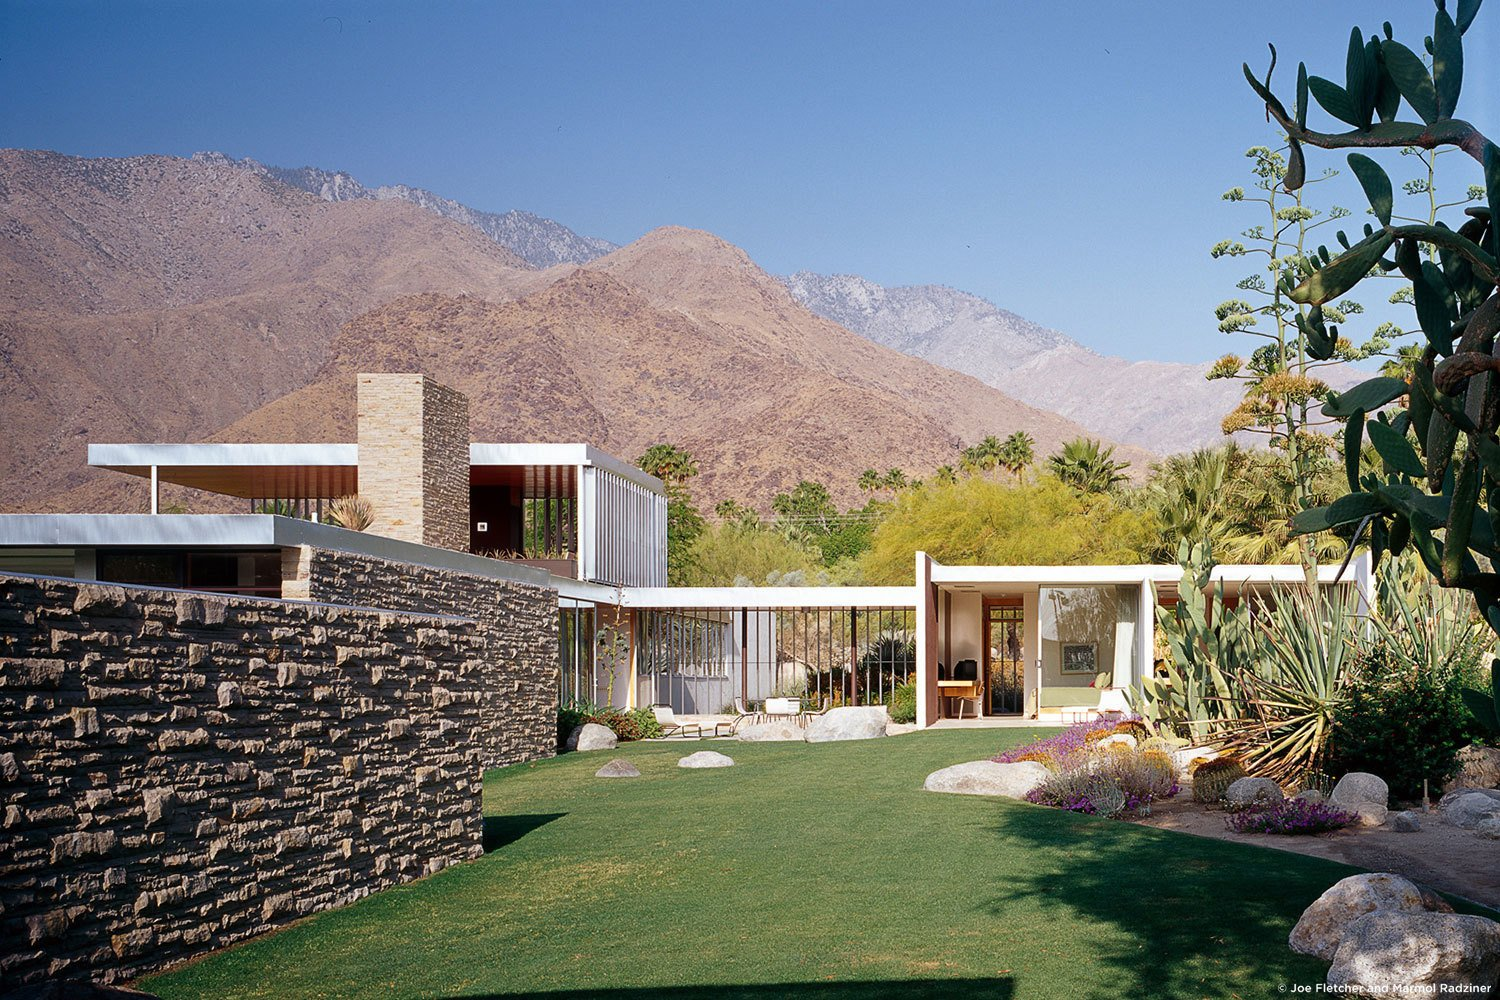 #KaufmannHouse #modern #midcentury #Nuetra #1946 #restoration #archival #original #details #lighting #windows #exterior #outside #outdoors #landscape #views #green #PalmSprings #California #MarmolRadziner   Photo 10 of 10 in 10 Things You Shouldn't Miss at Modernism Week in Palm Springs